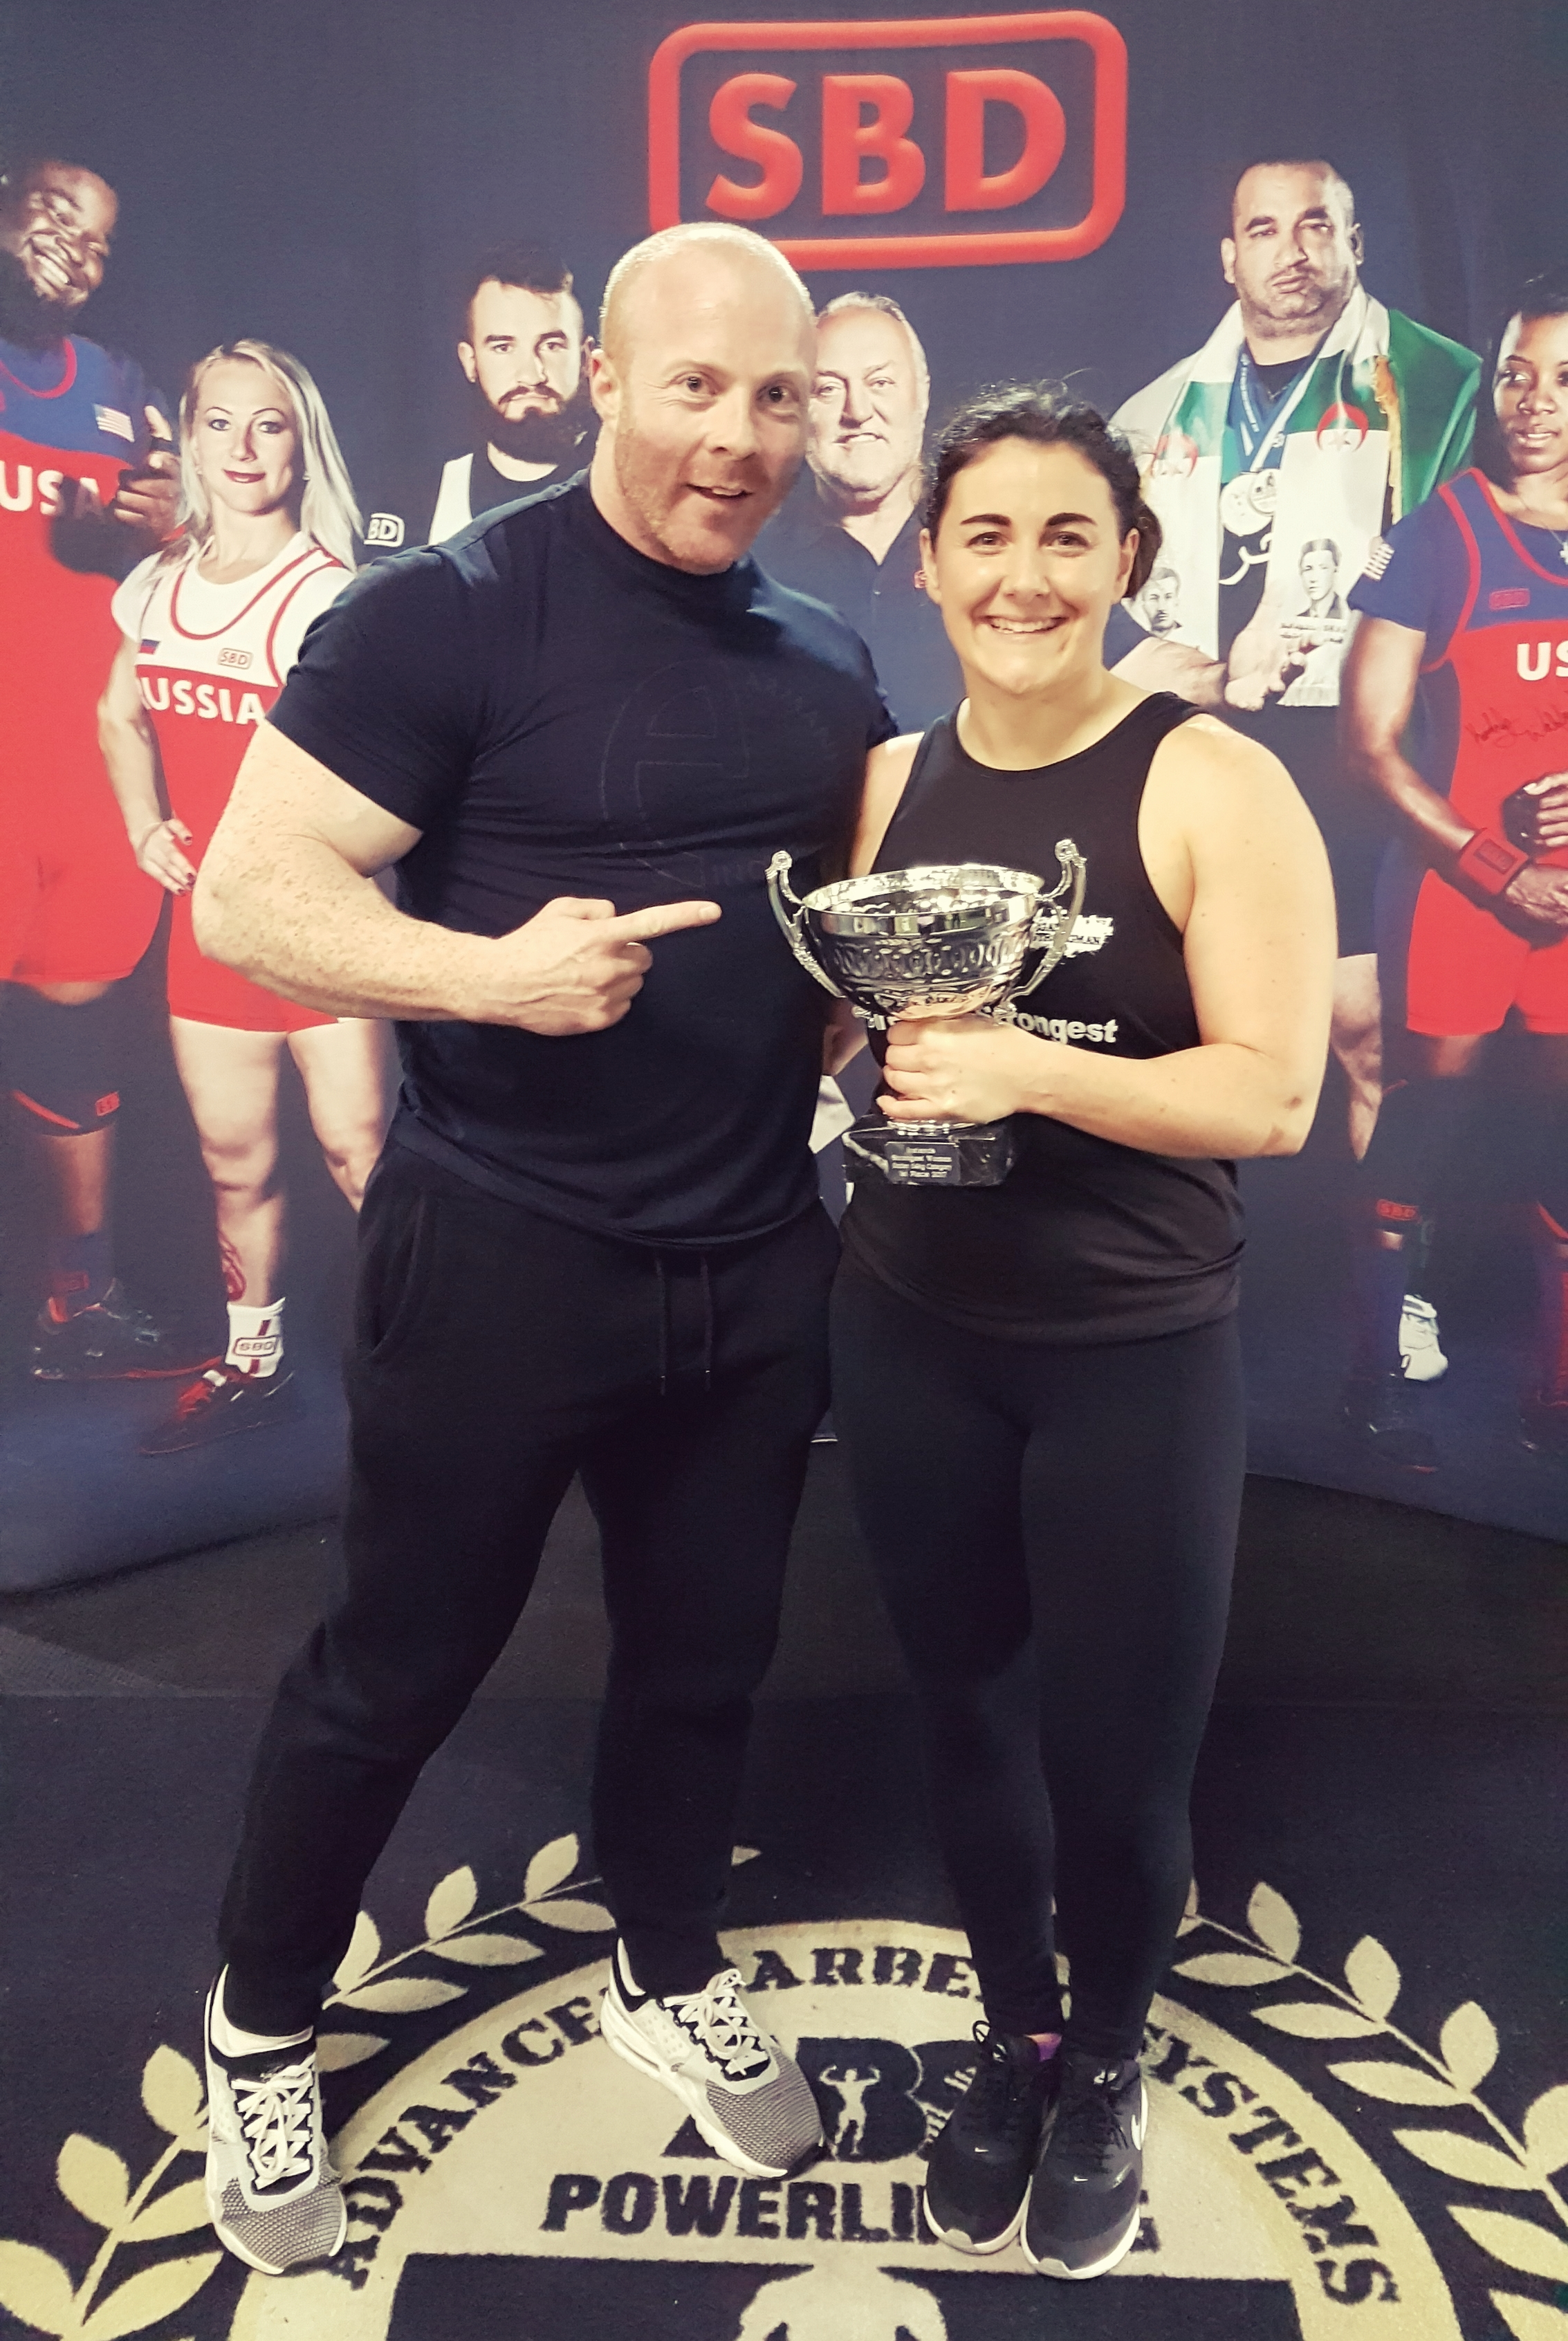 All Irelands Strongest Woman with nutrition coach Bryan Hickey